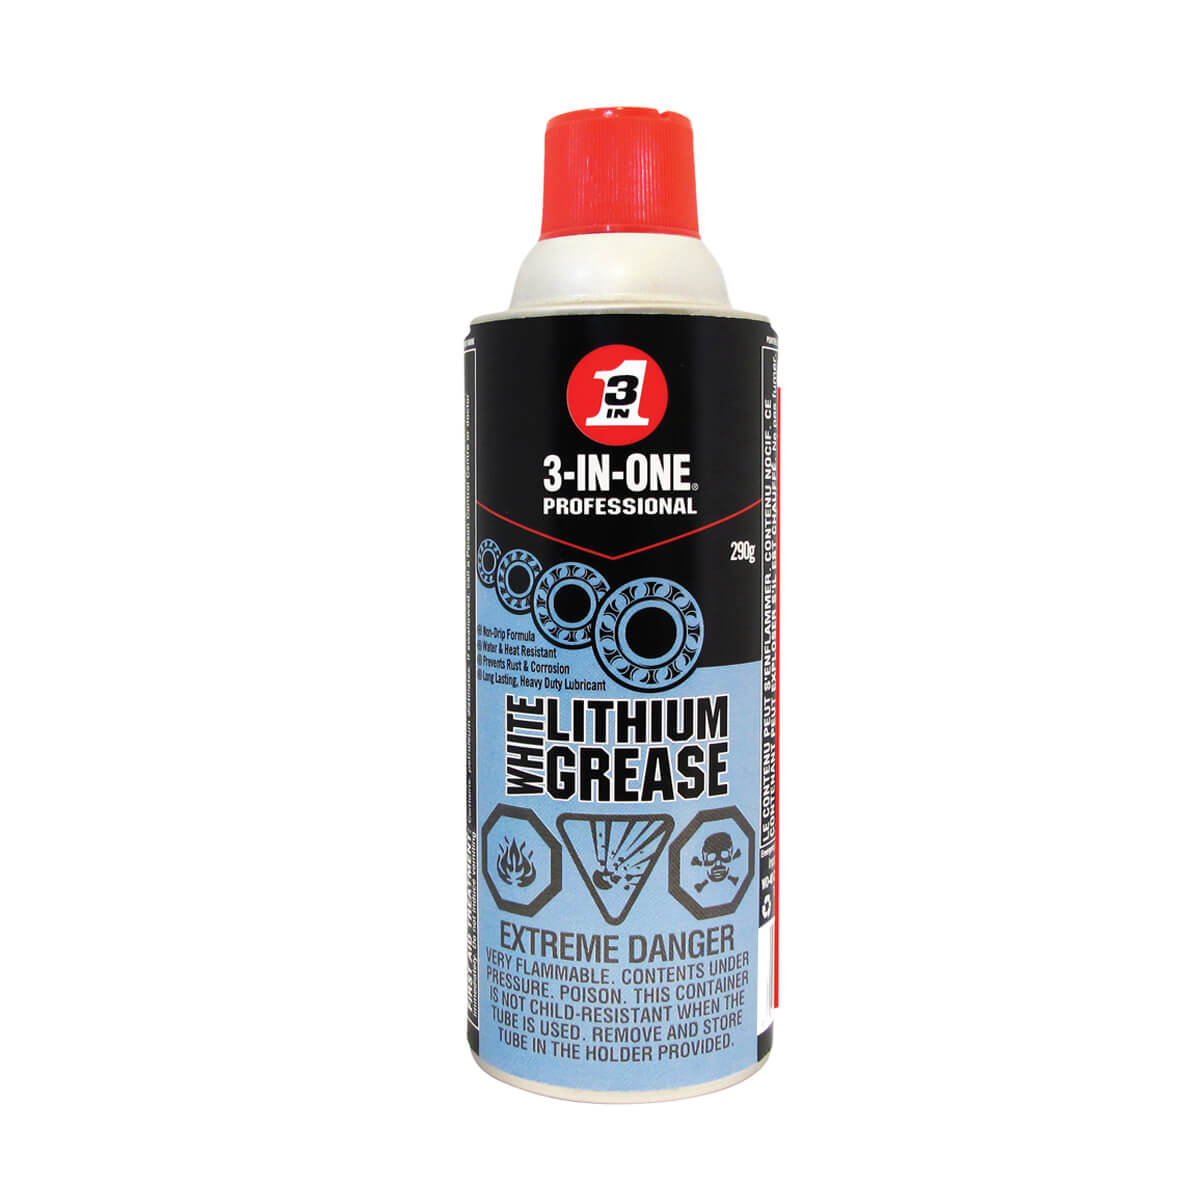 3-IN-1 Professional White Lithium Grease - 290 g